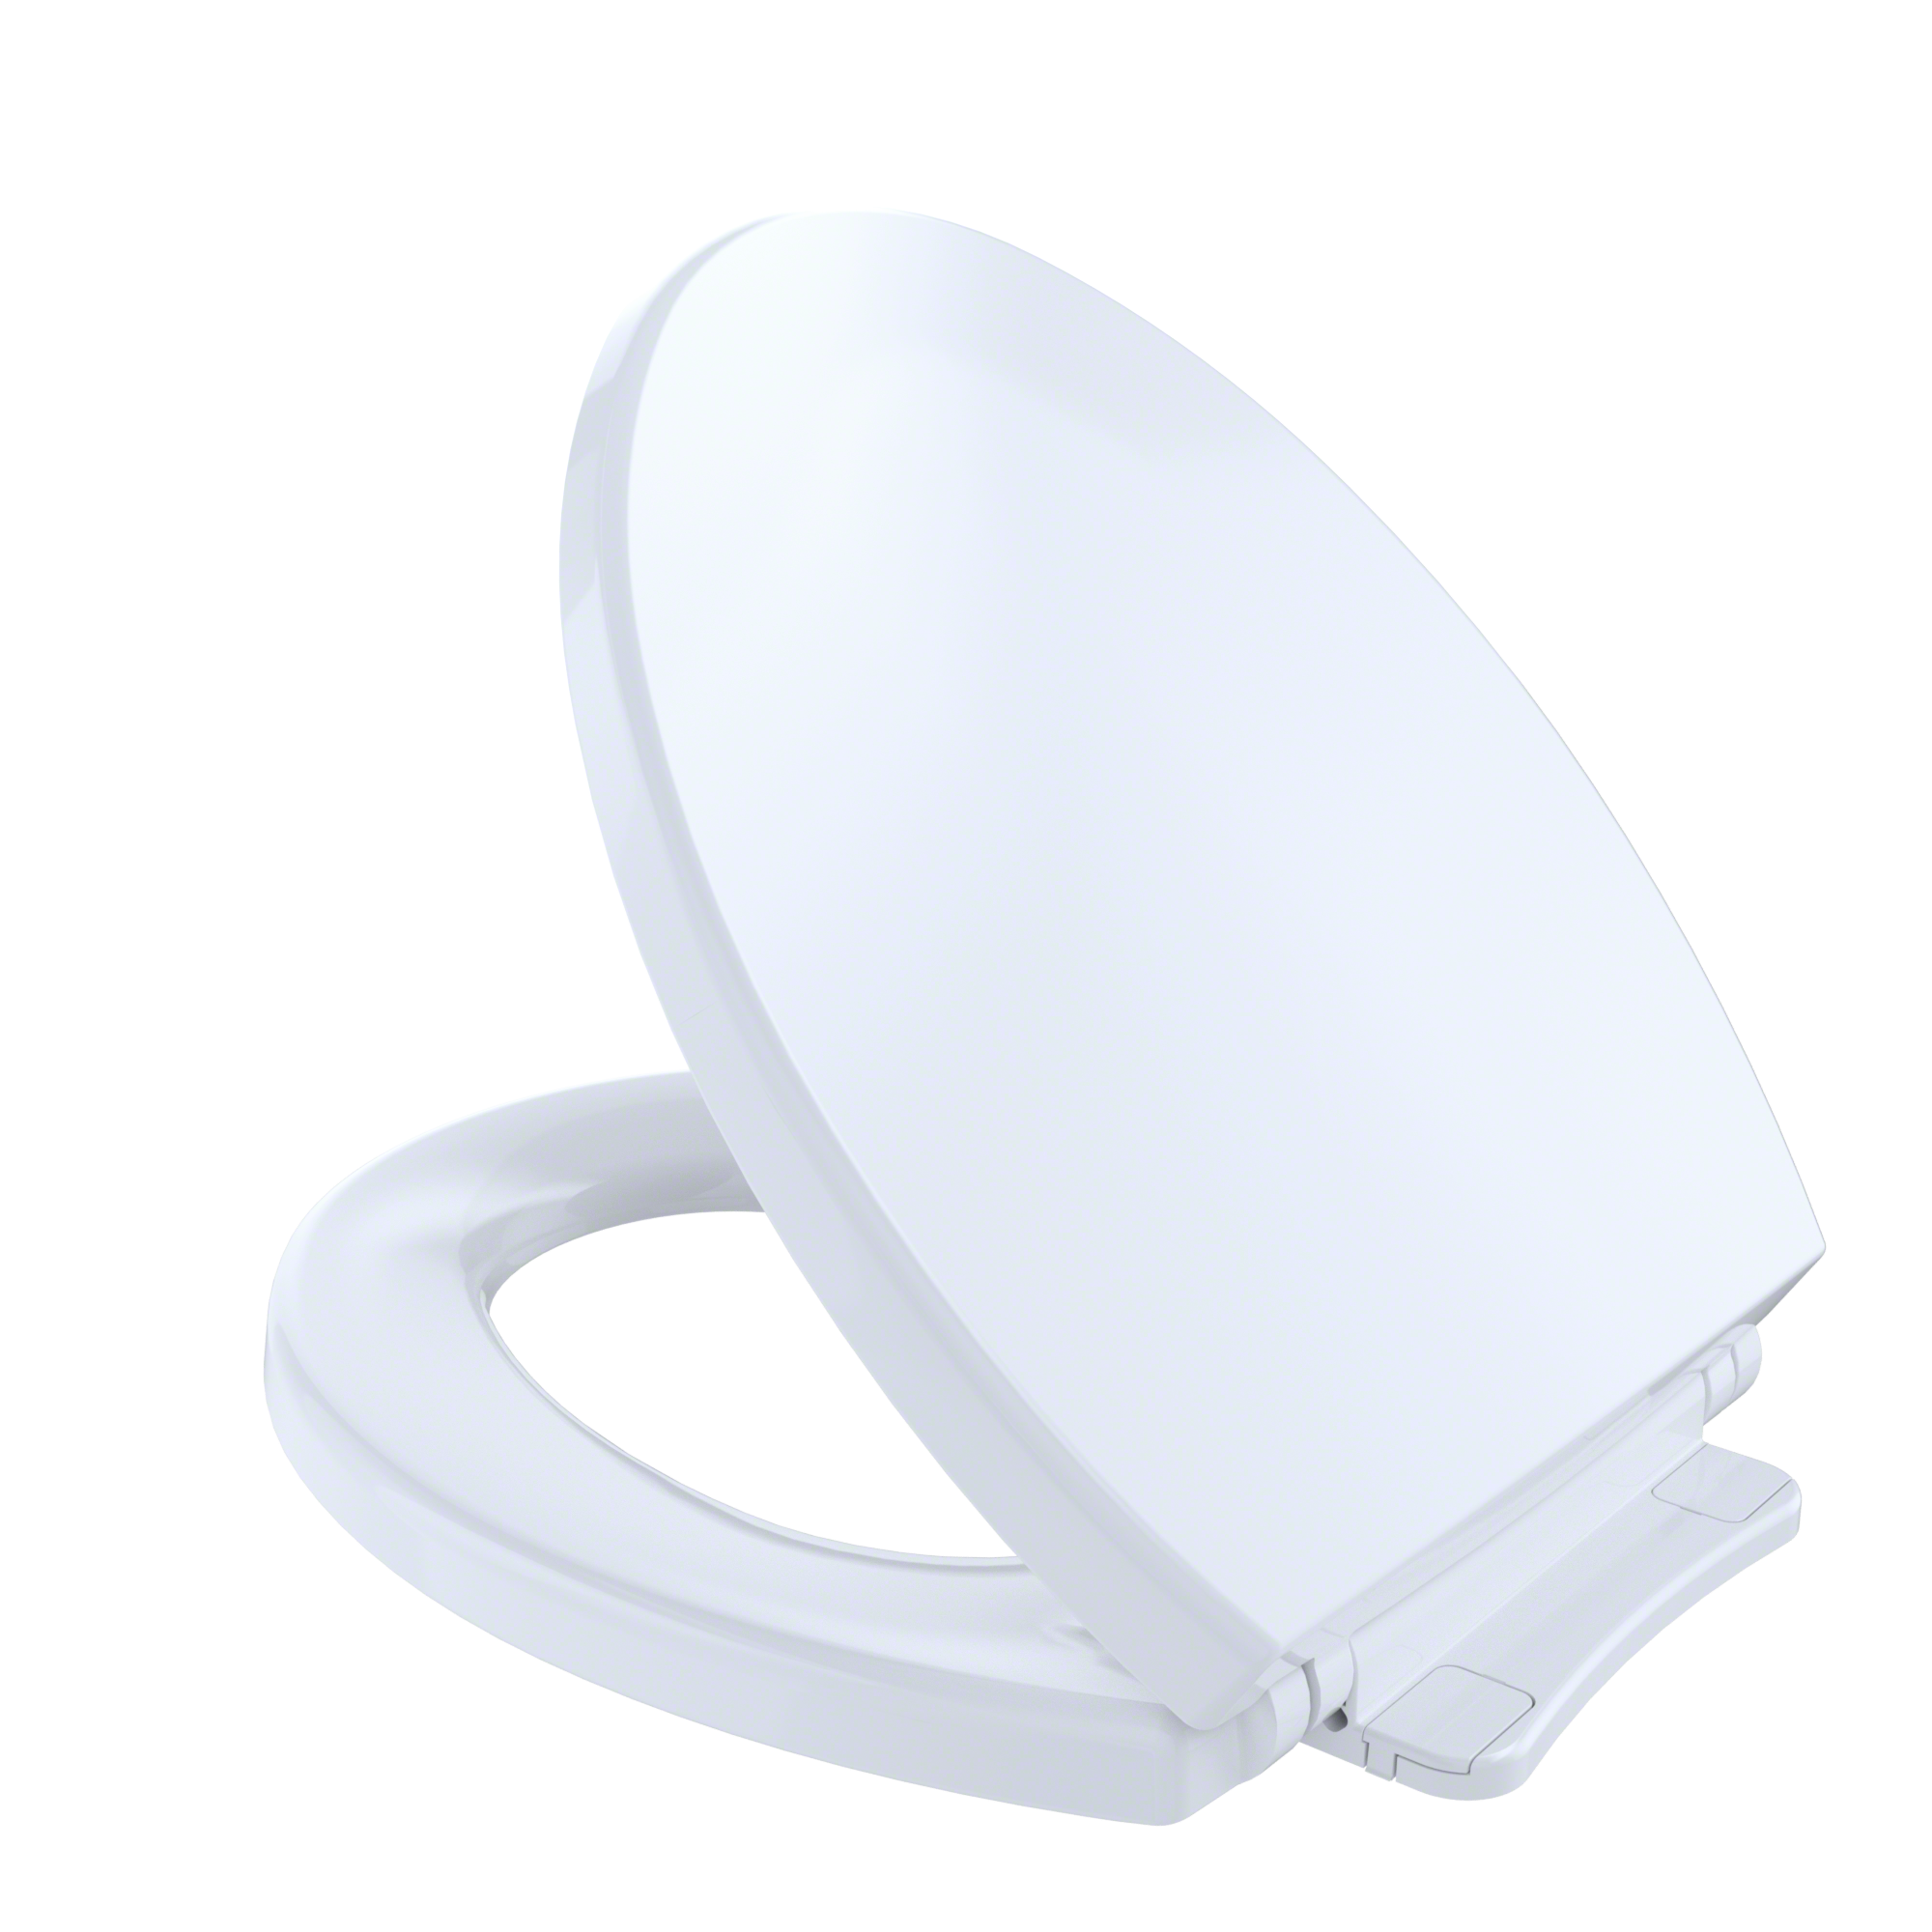 TOTO® SoftClose®Non Slamming, Slow Close Round Toilet Seat and Lid,Cotton White - SS113#01